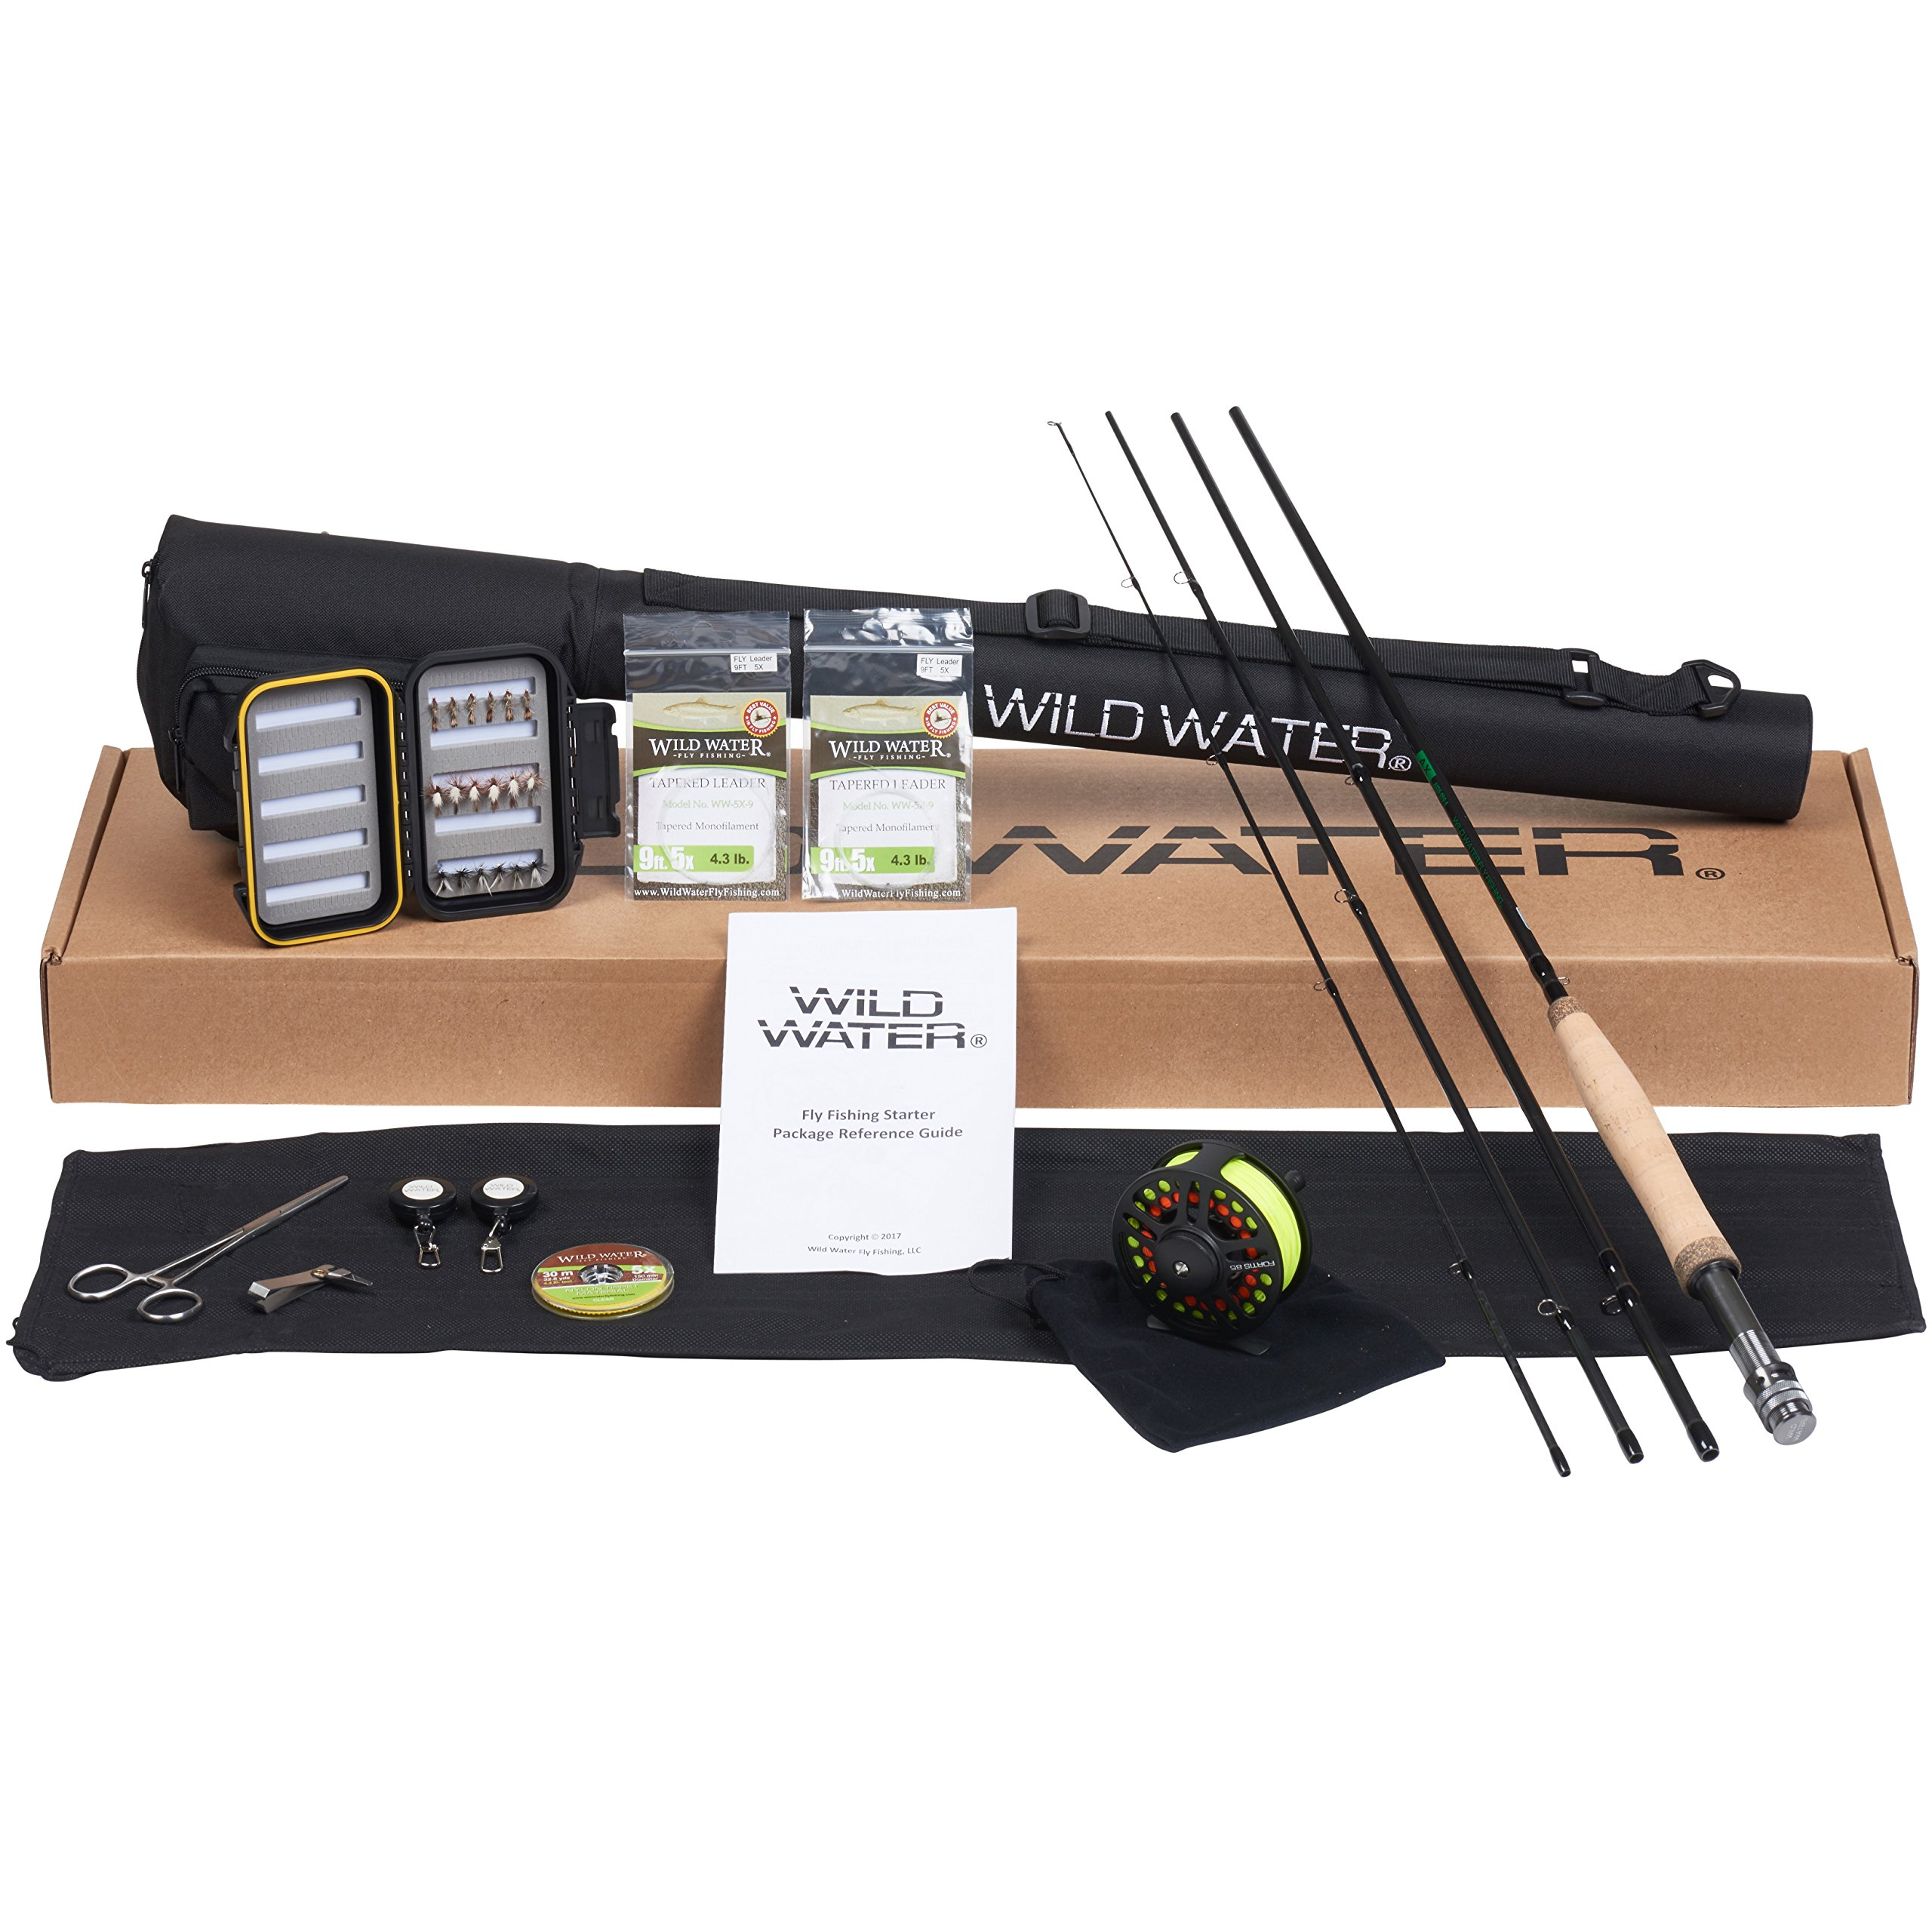 Wild Water Fly Fishing - CNC Machined Aluminum Fly Reel - 5/6 Complete Starter Package by Wild Water